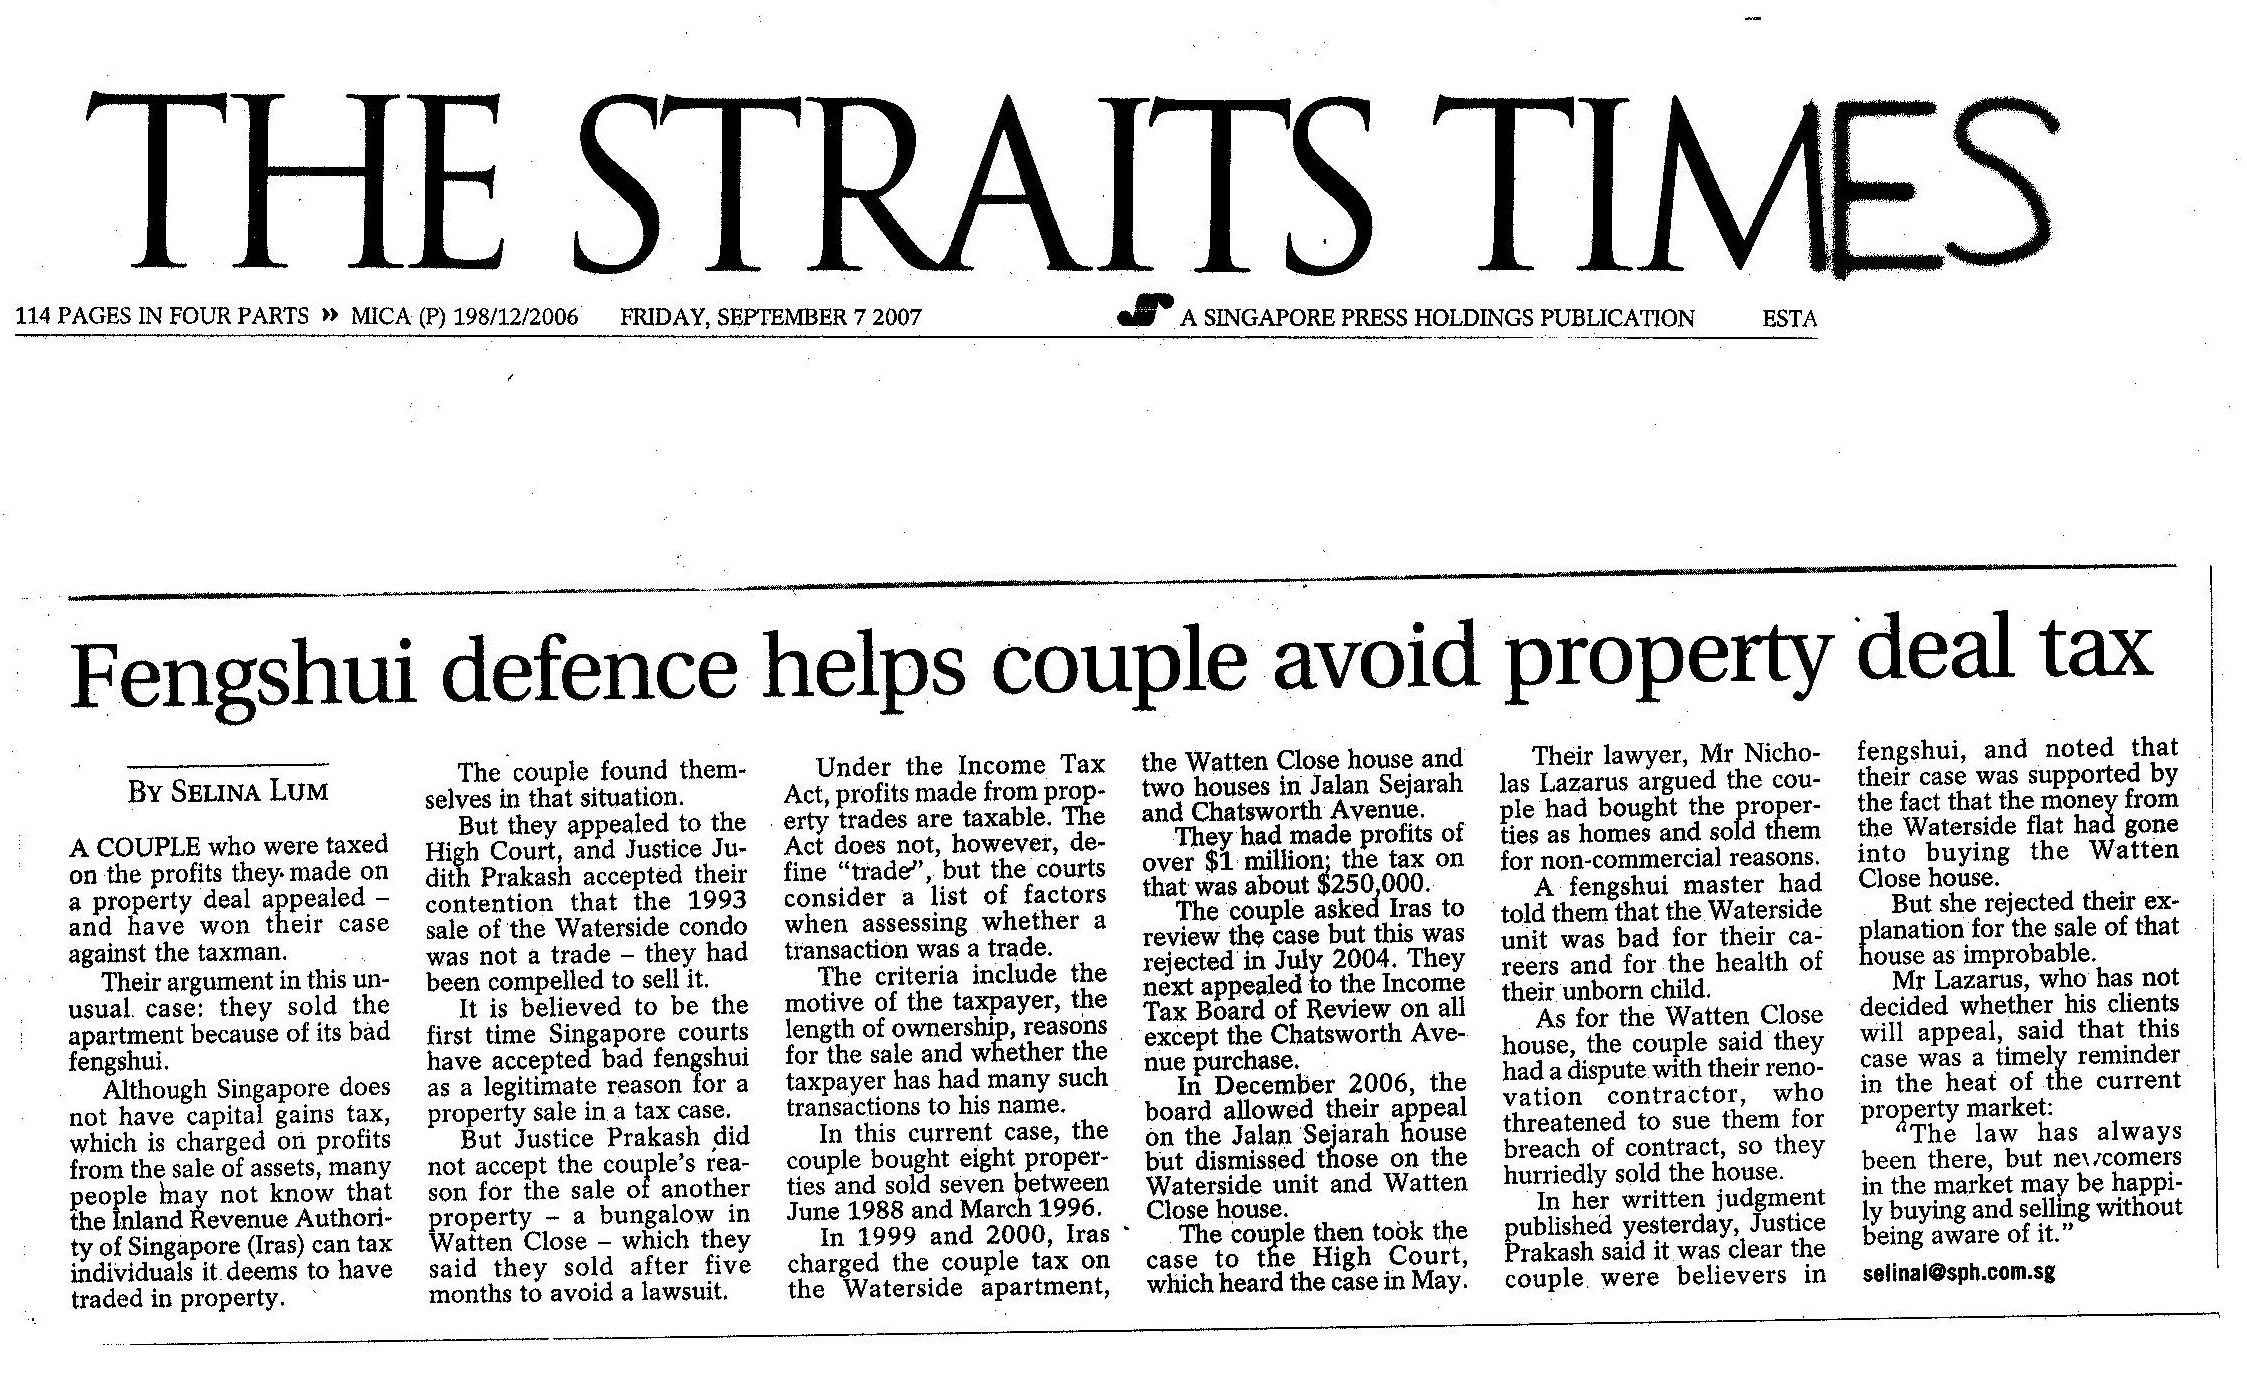 The Straits Times on 7 Sept 2007